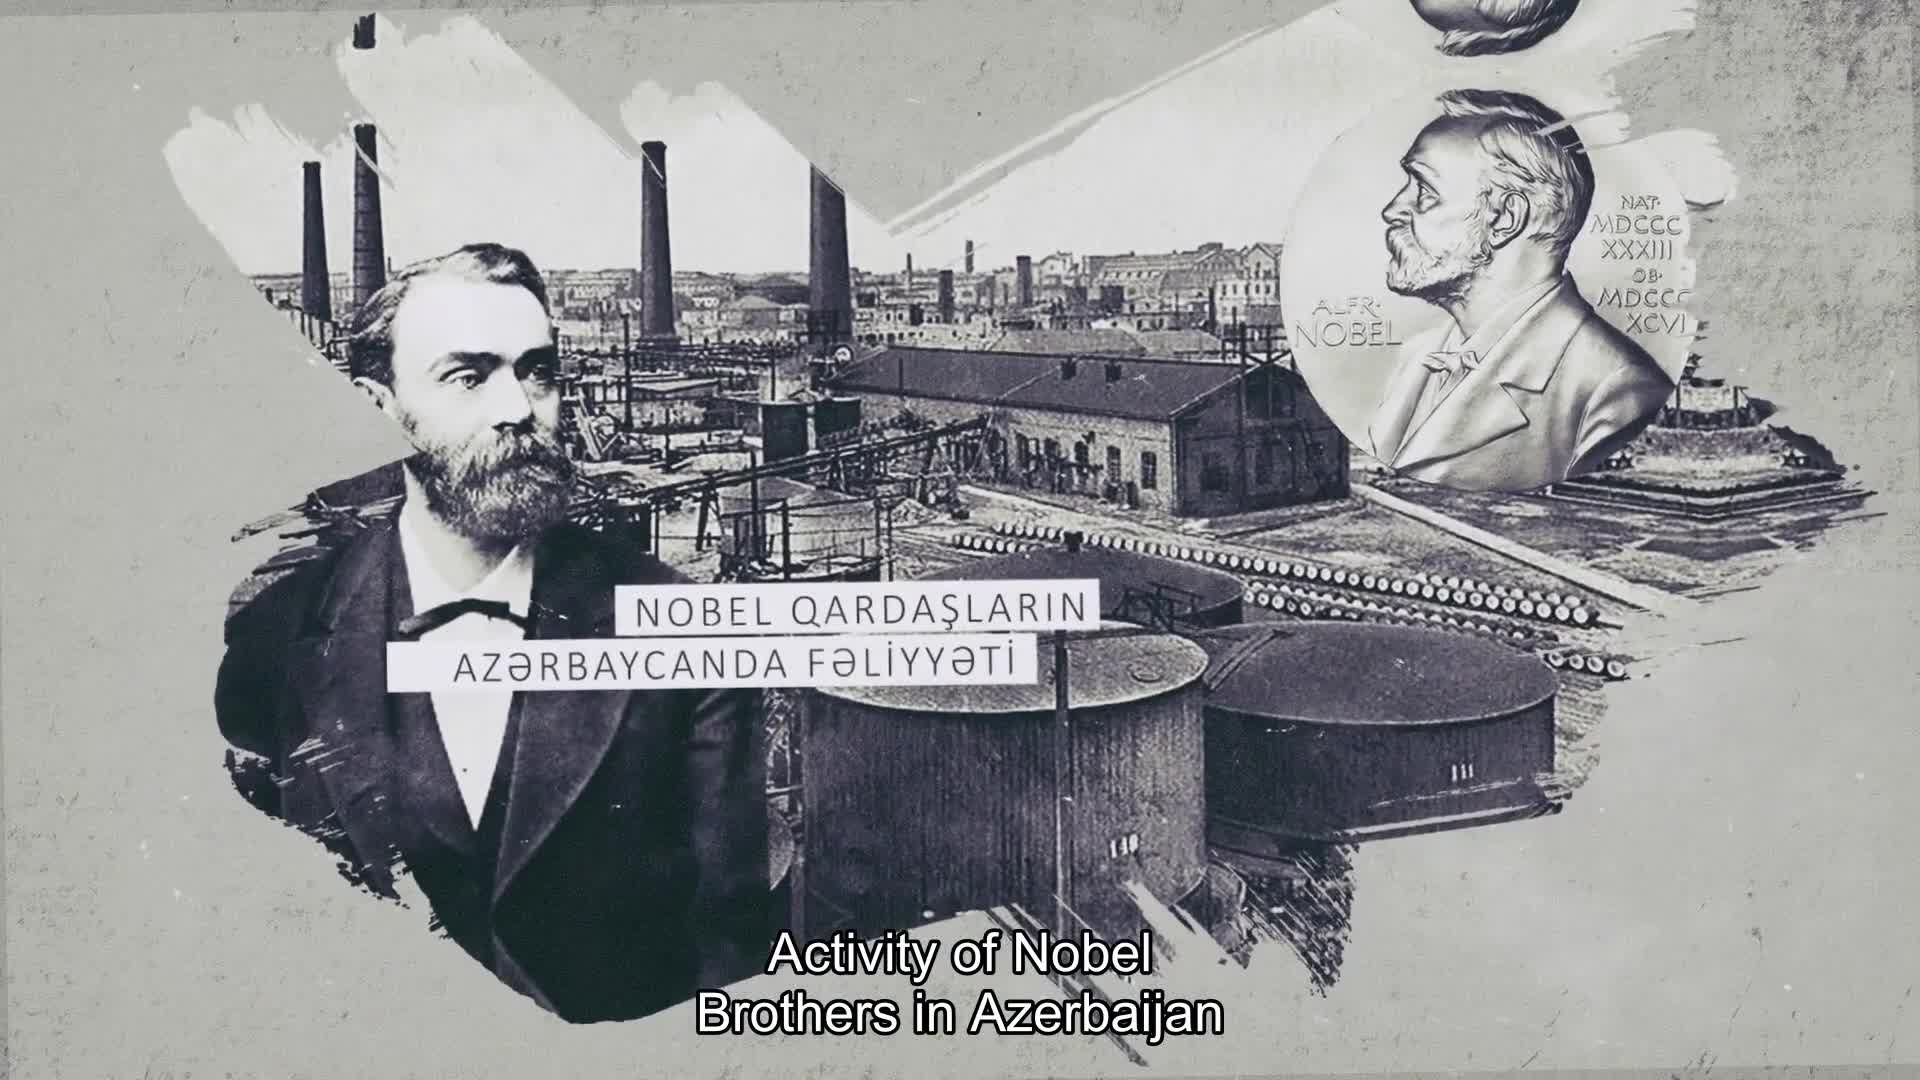 THE FIRST SUCCESS OF THE NOBEL BROTHERS